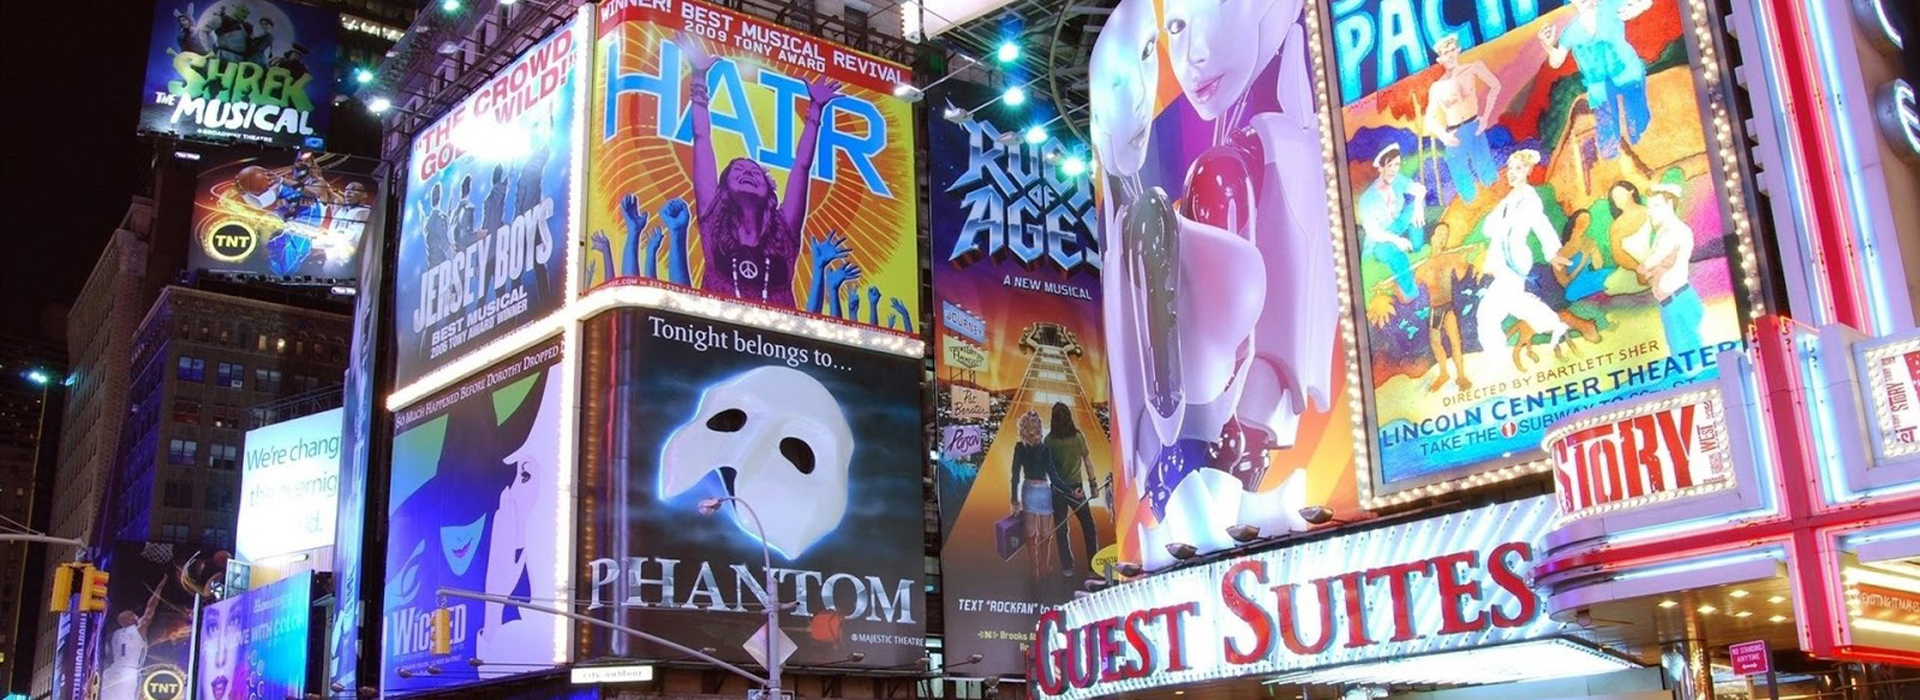 New-York-times-square-led-display-screenps